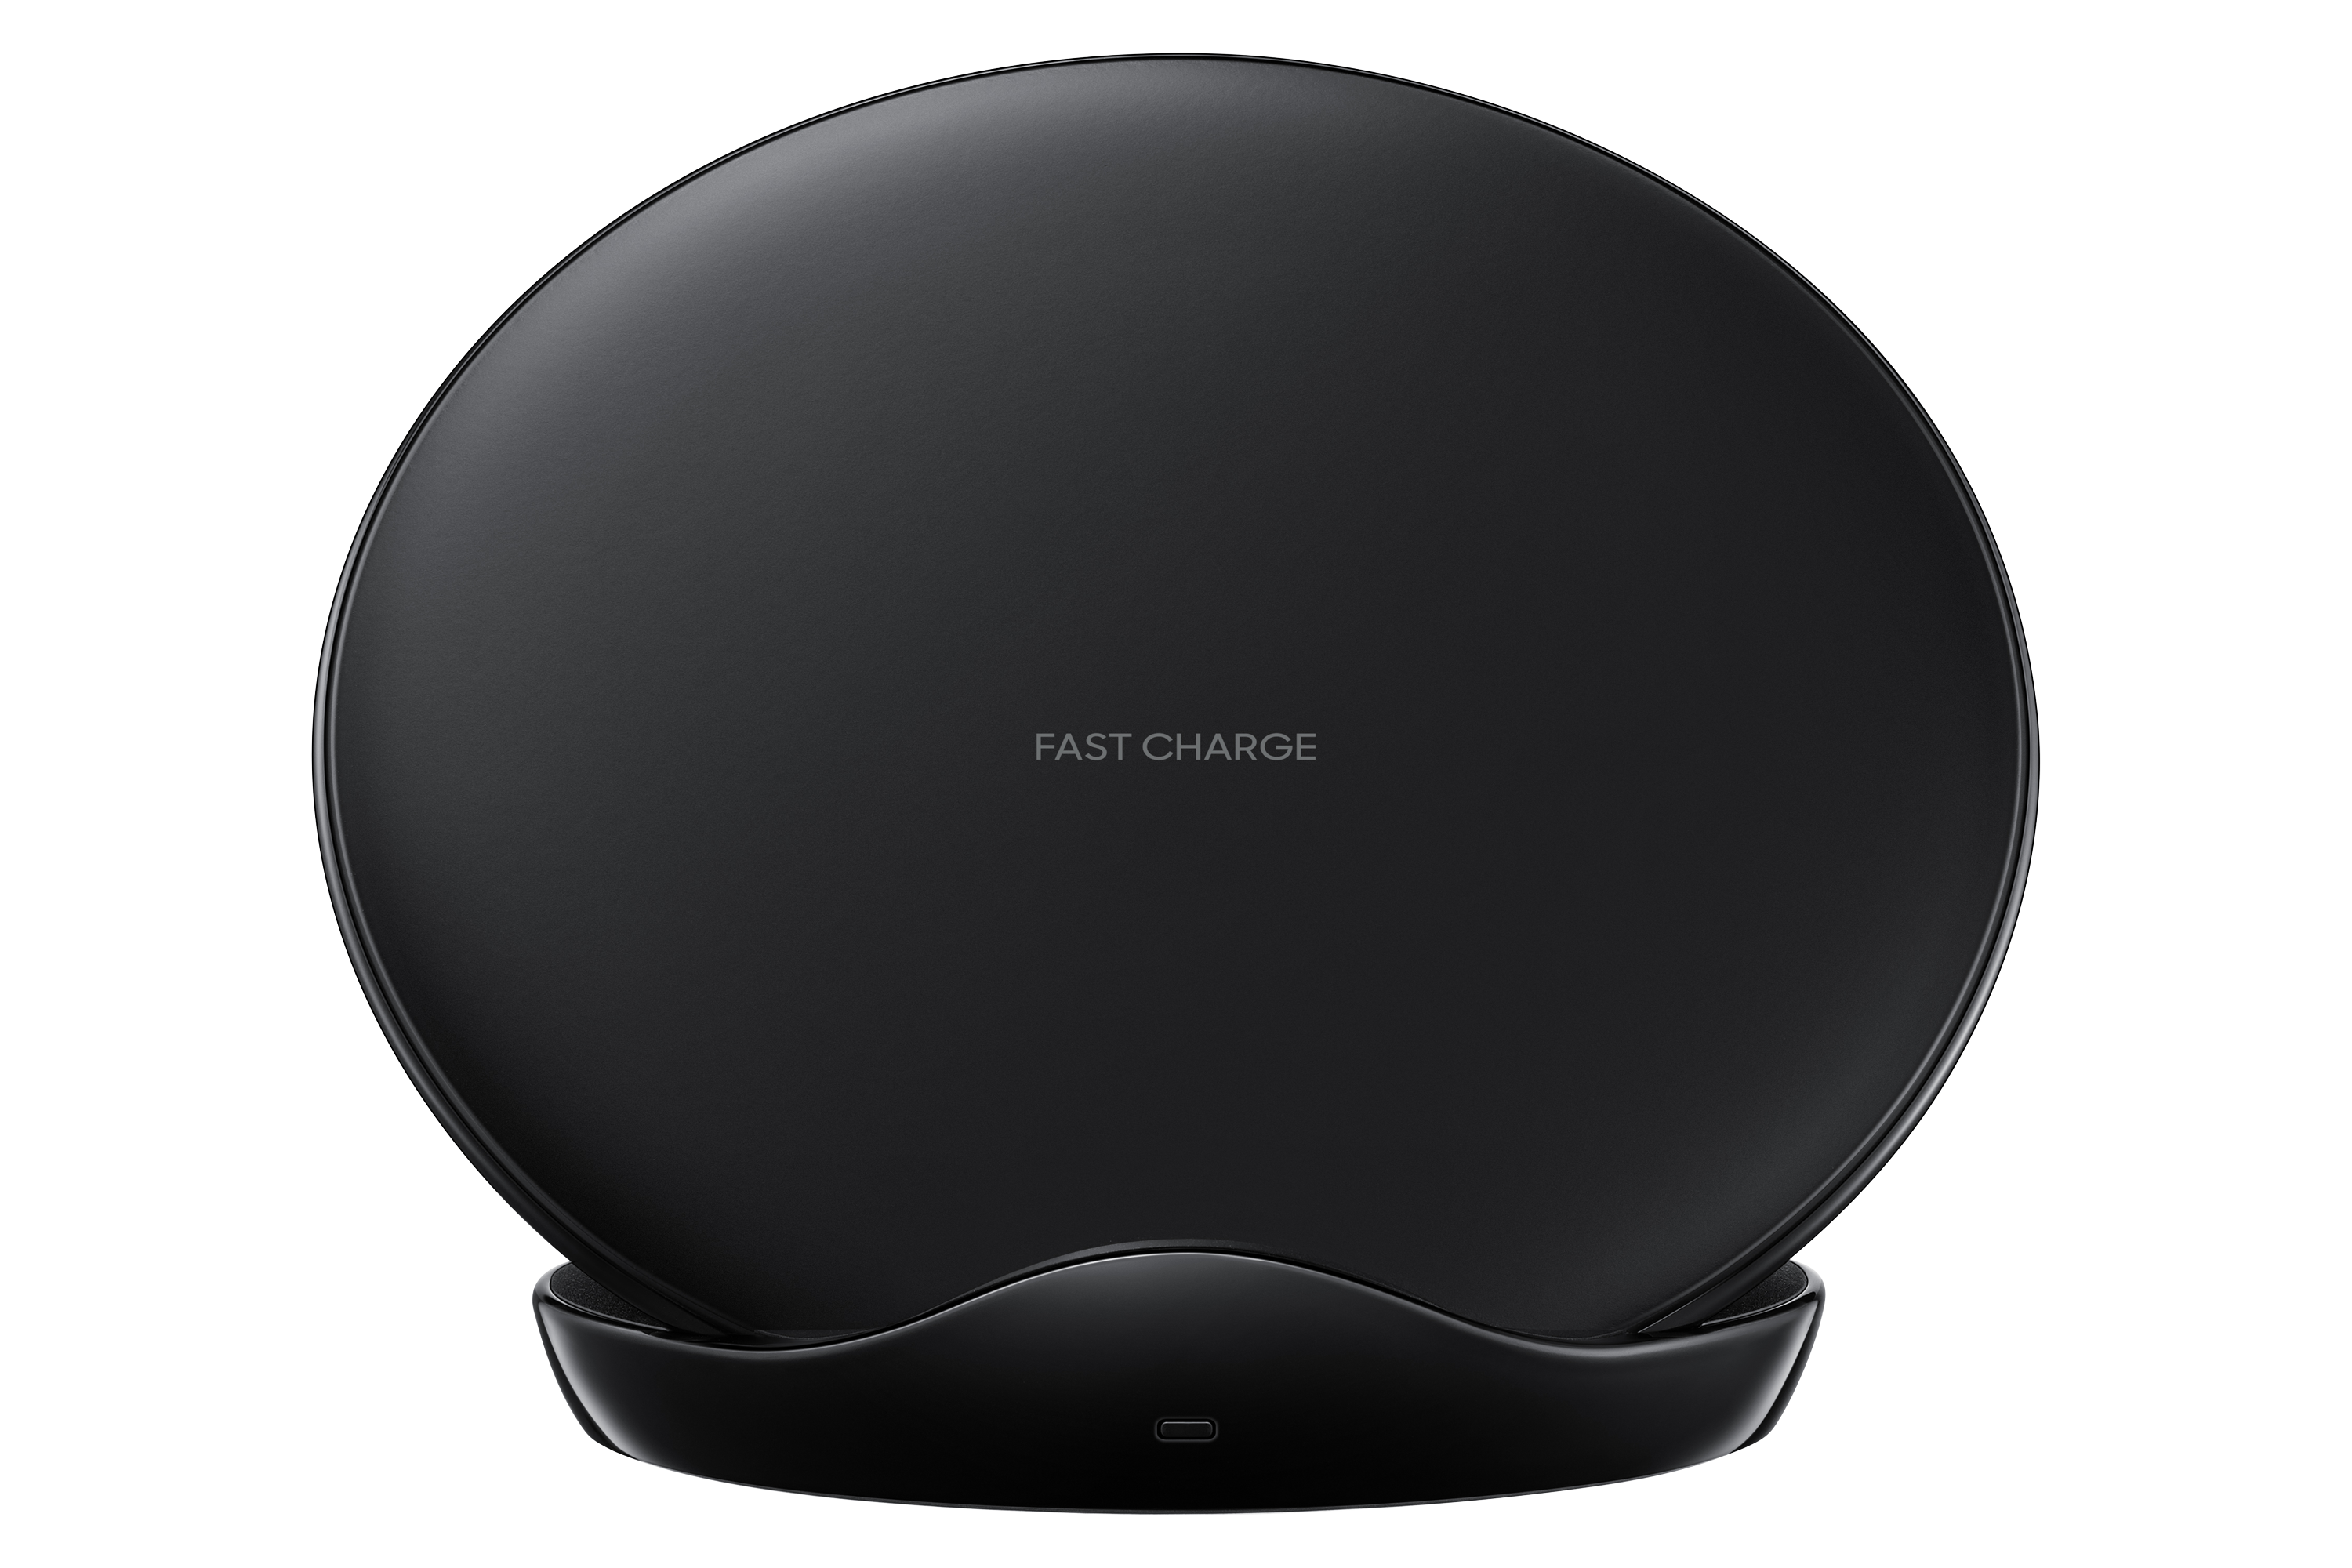 Accesorio Para El Celular Samsung Fast Charge Wireless Charging Stand - Black + Samsung en VeoyCompro.net